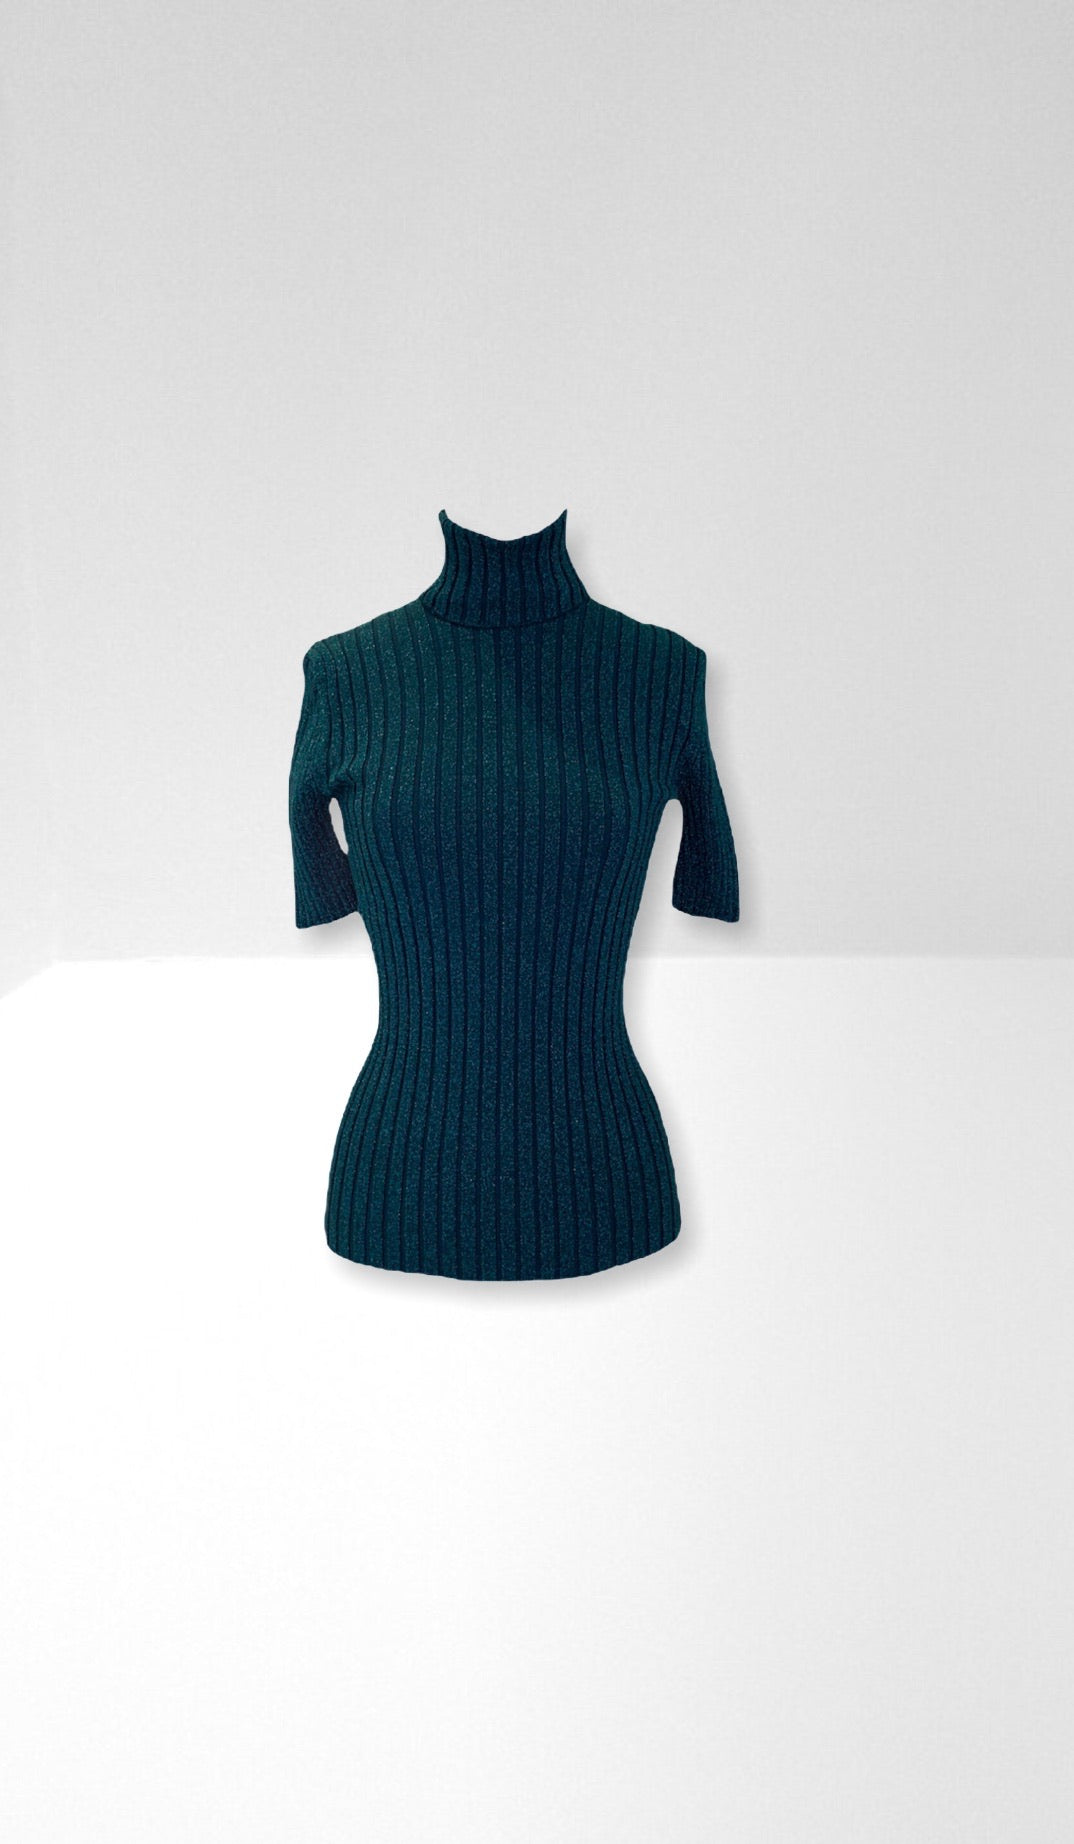 Green roll neck knit top